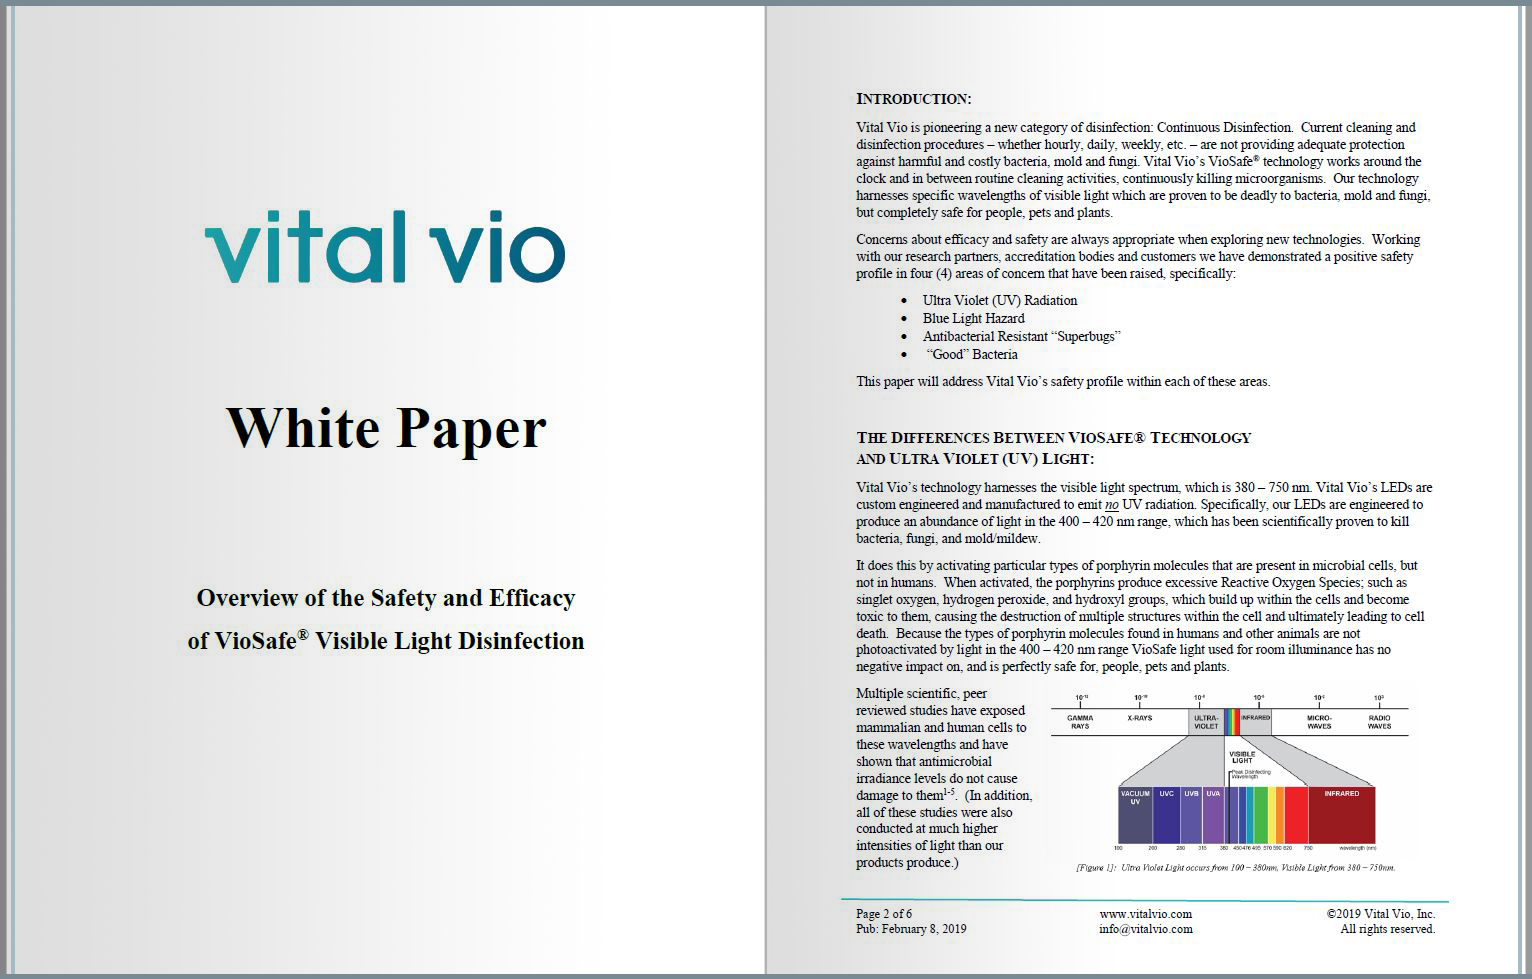 Vital Vio White Paper: Overview of the Safety and Efficacy of VioSafe® Visible Light Disinfection